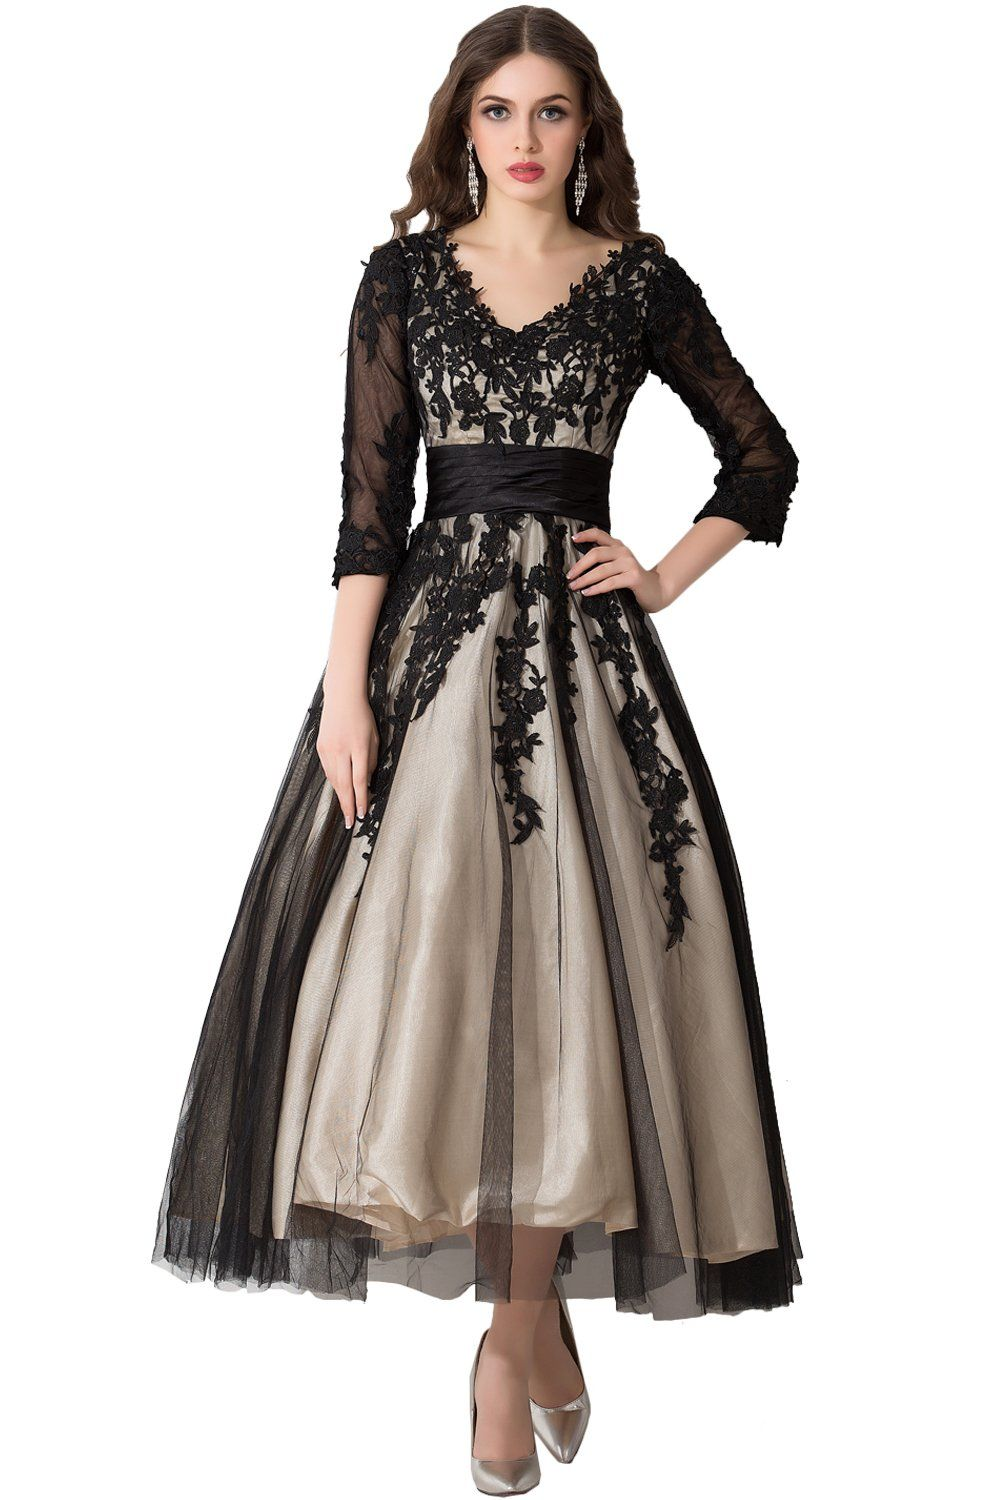 Sunvary champagne and black long sleeves mother of bride dresses